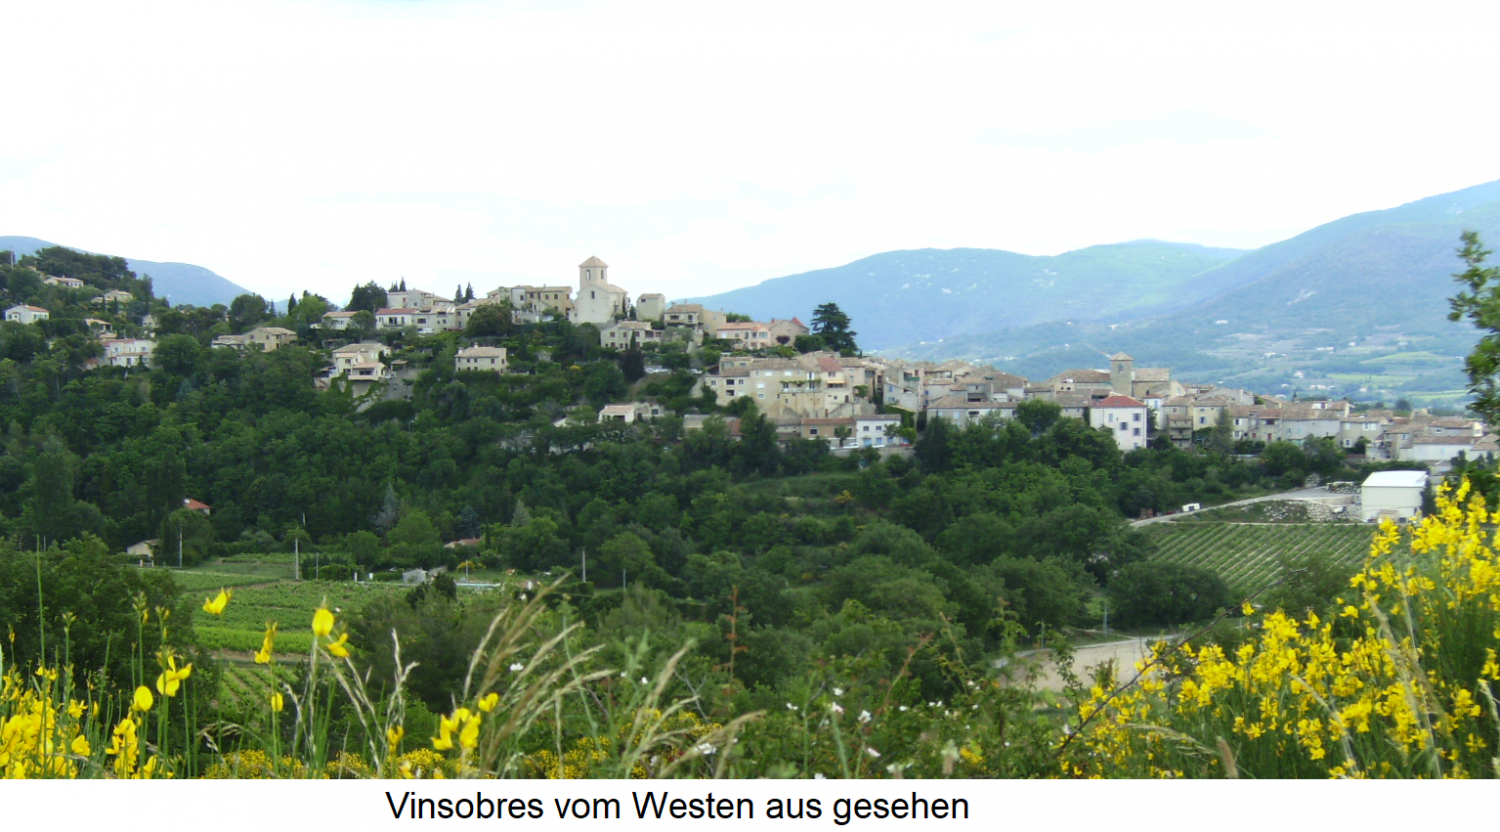 Vinsobres seen from the west